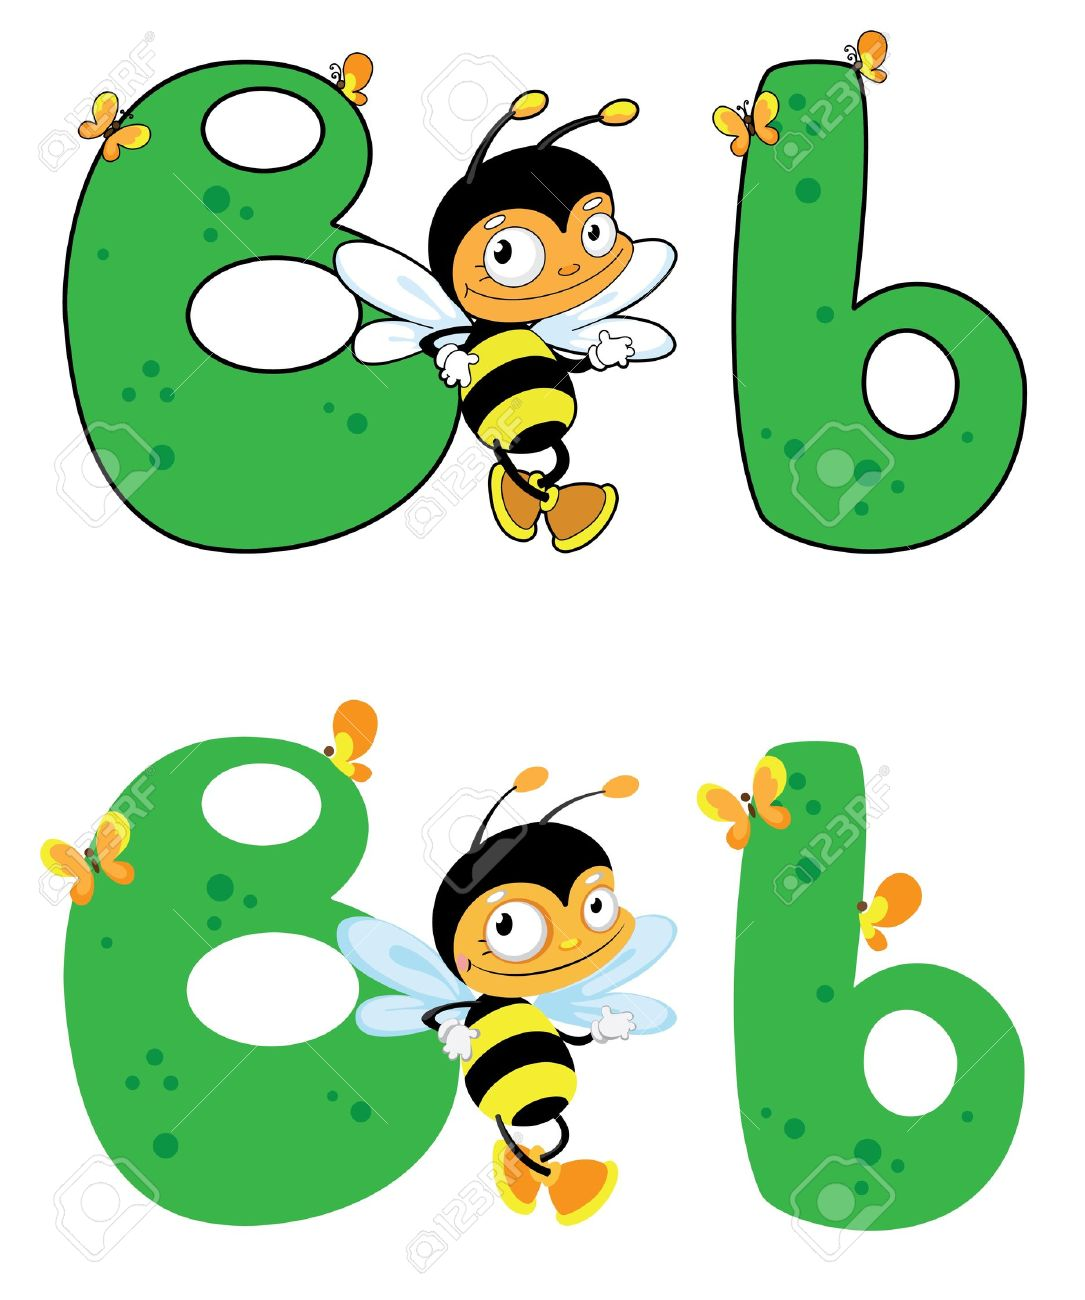 Alphabet bee abc clipart vector library library Illustration Of A Letter B Bee Royalty Free Cliparts, Vectors, And ... vector library library